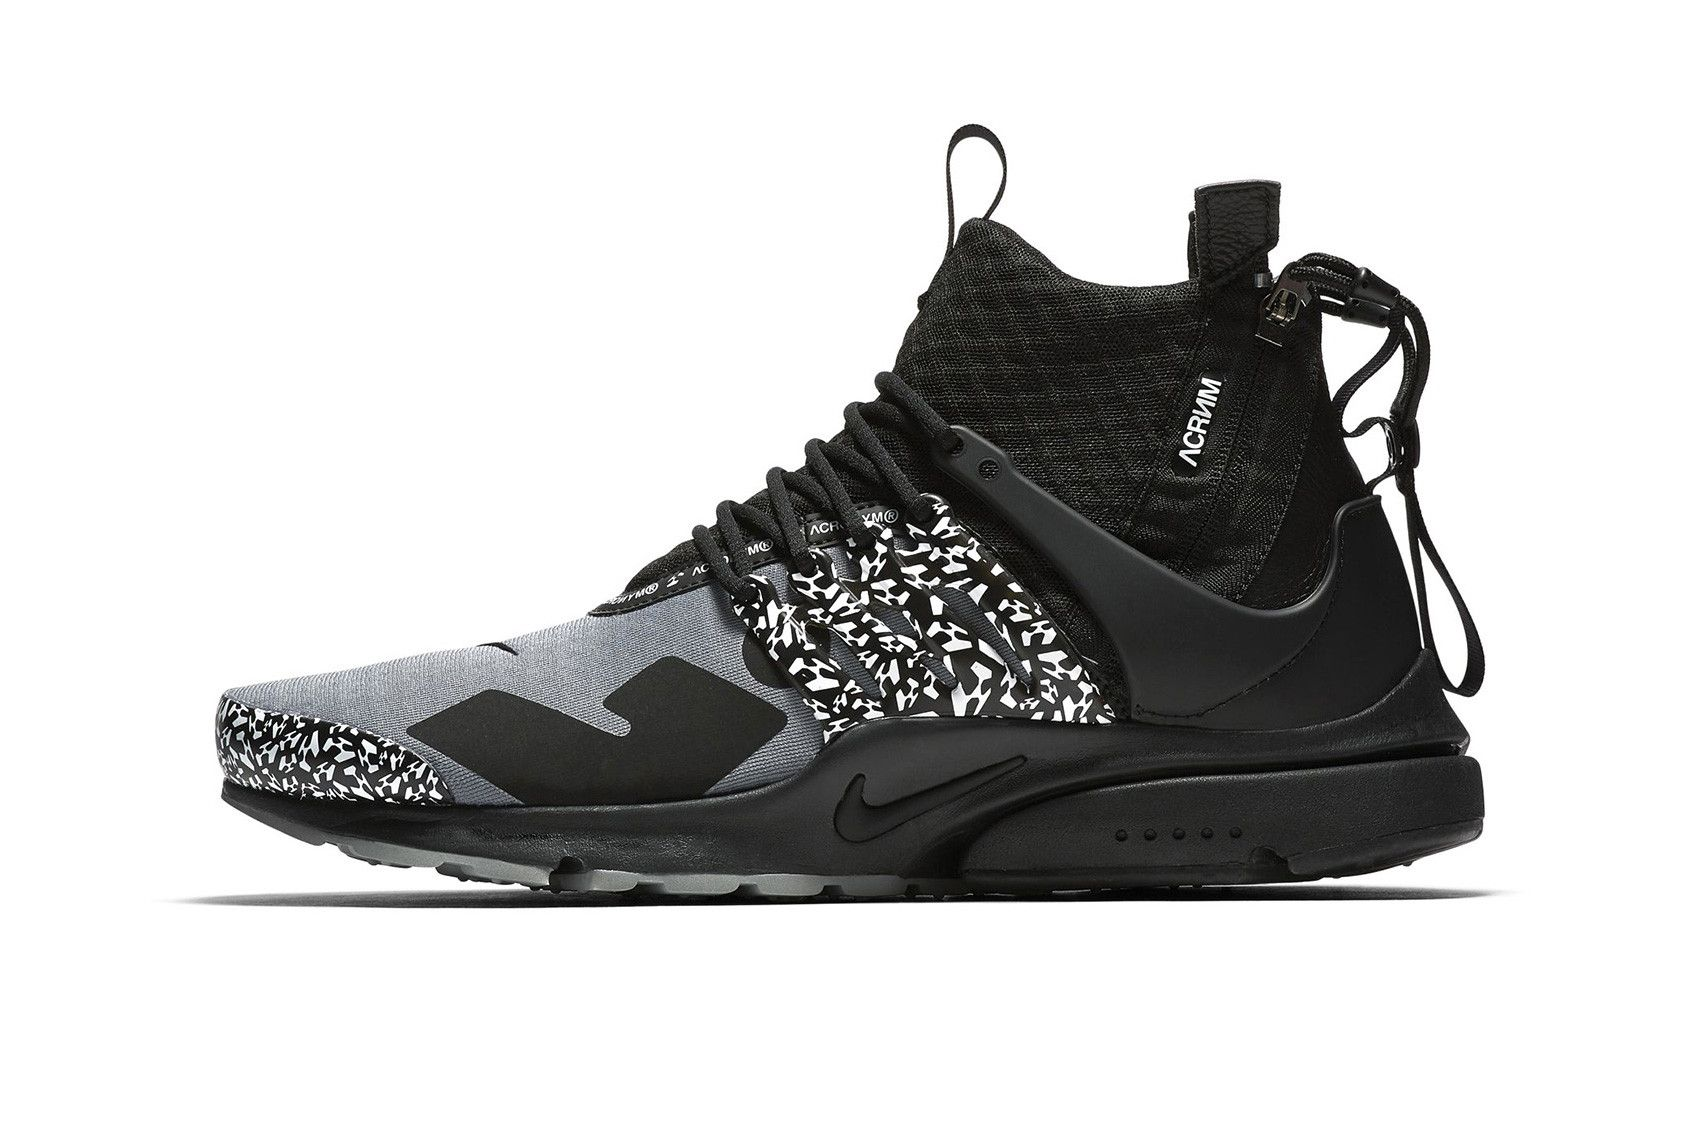 huge discount c2094 68eba Presto Corporation release (13), part of the Acronym x Nike Collection